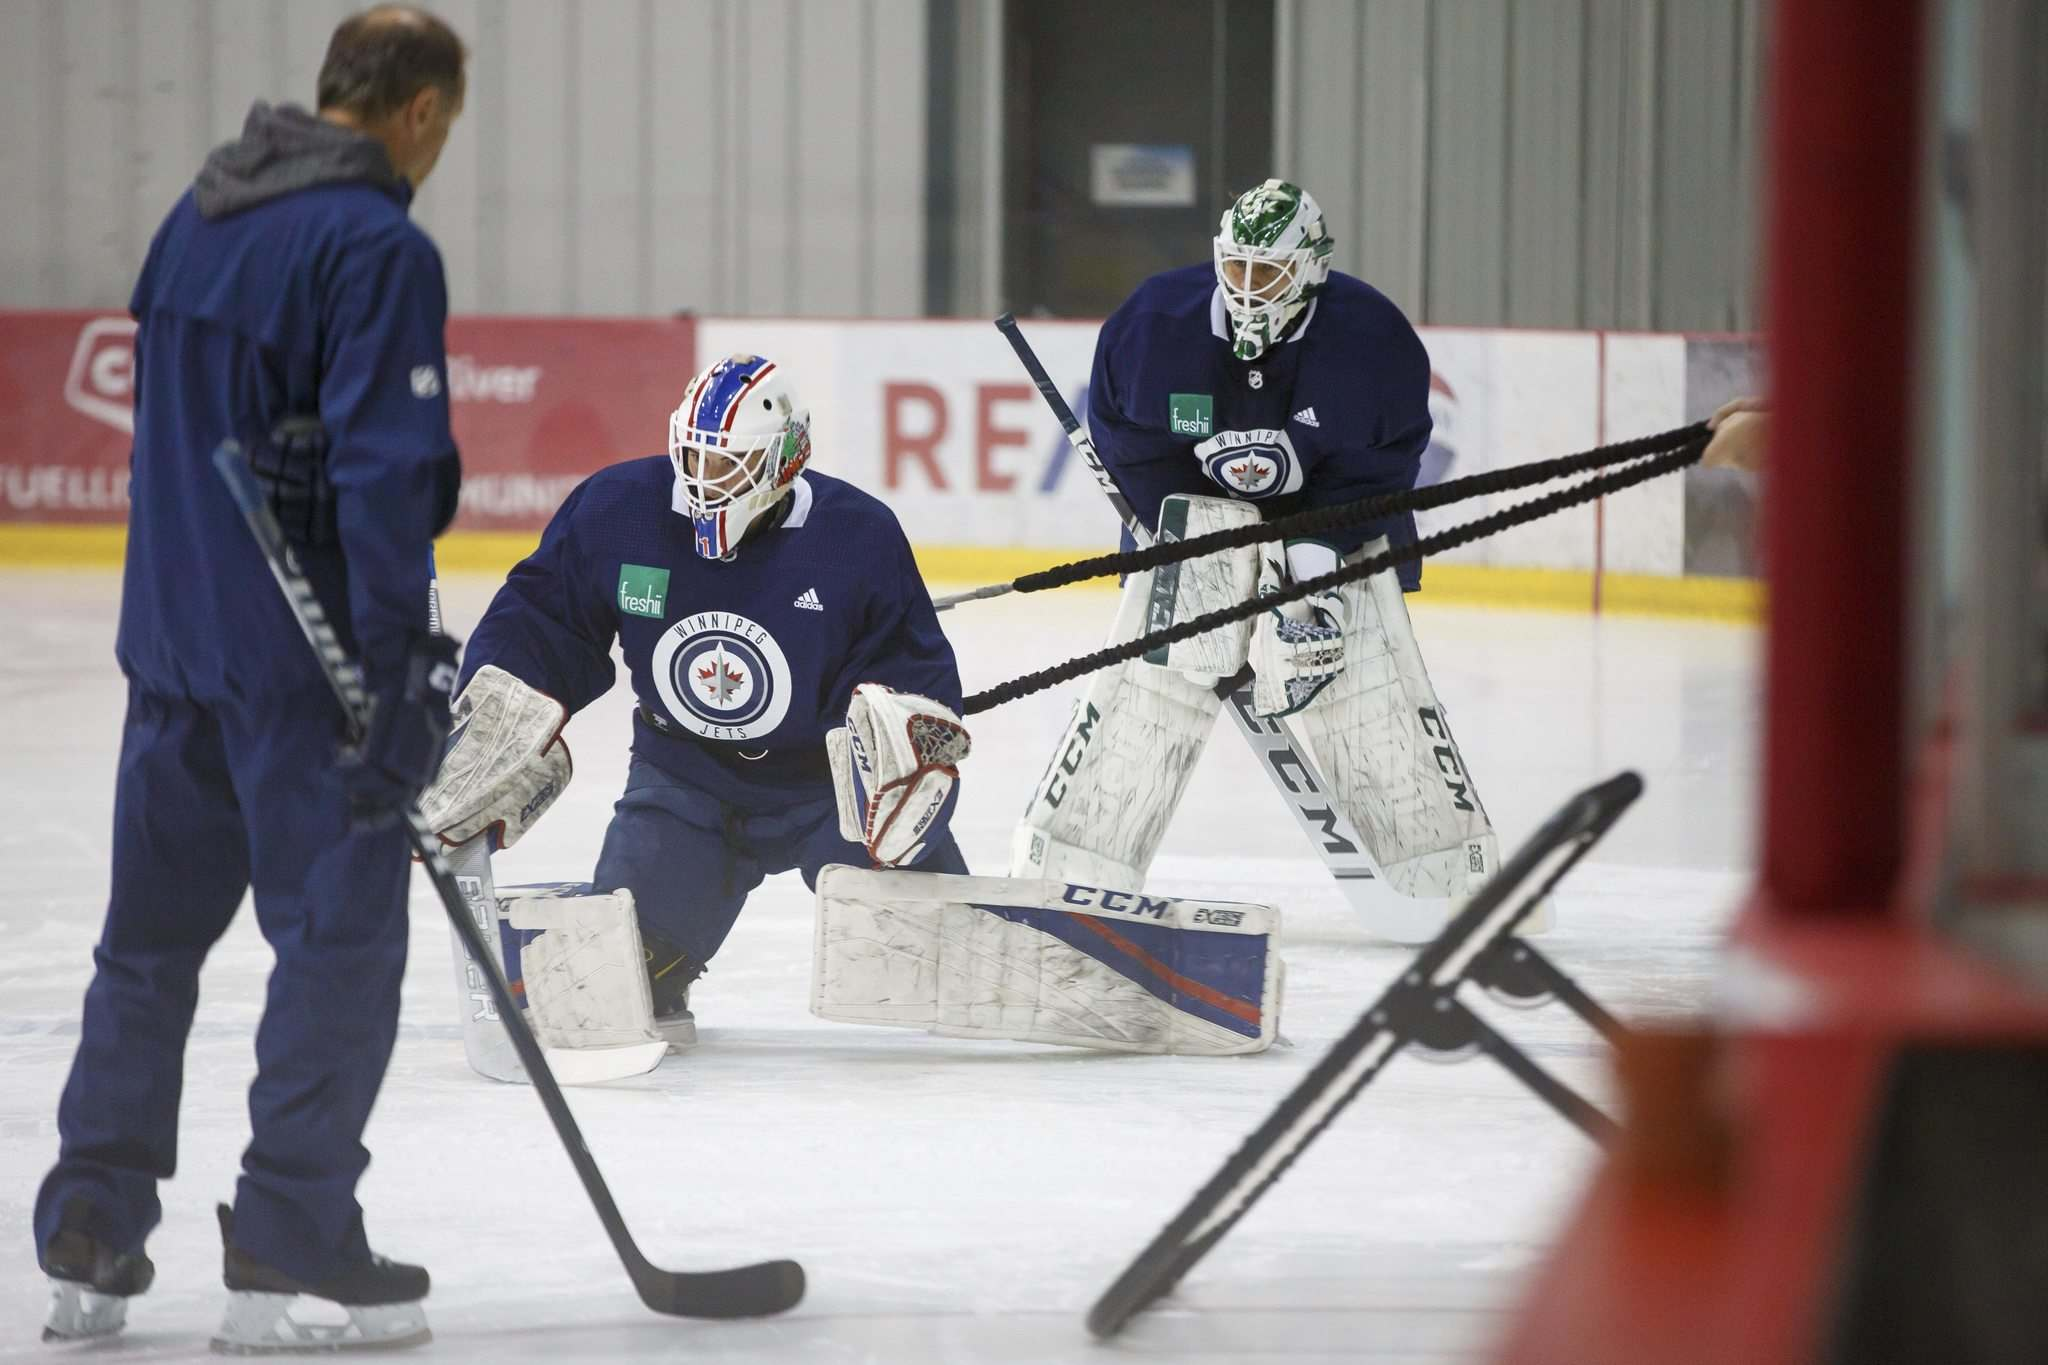 MIKE DEAL / WINNIPEG FREE PRESS</p><p>Winnipeg Jets goaltending prospect Arvid Holm (right) watches Logan Neaton work on a drill during development camp on Monday morning.</p>